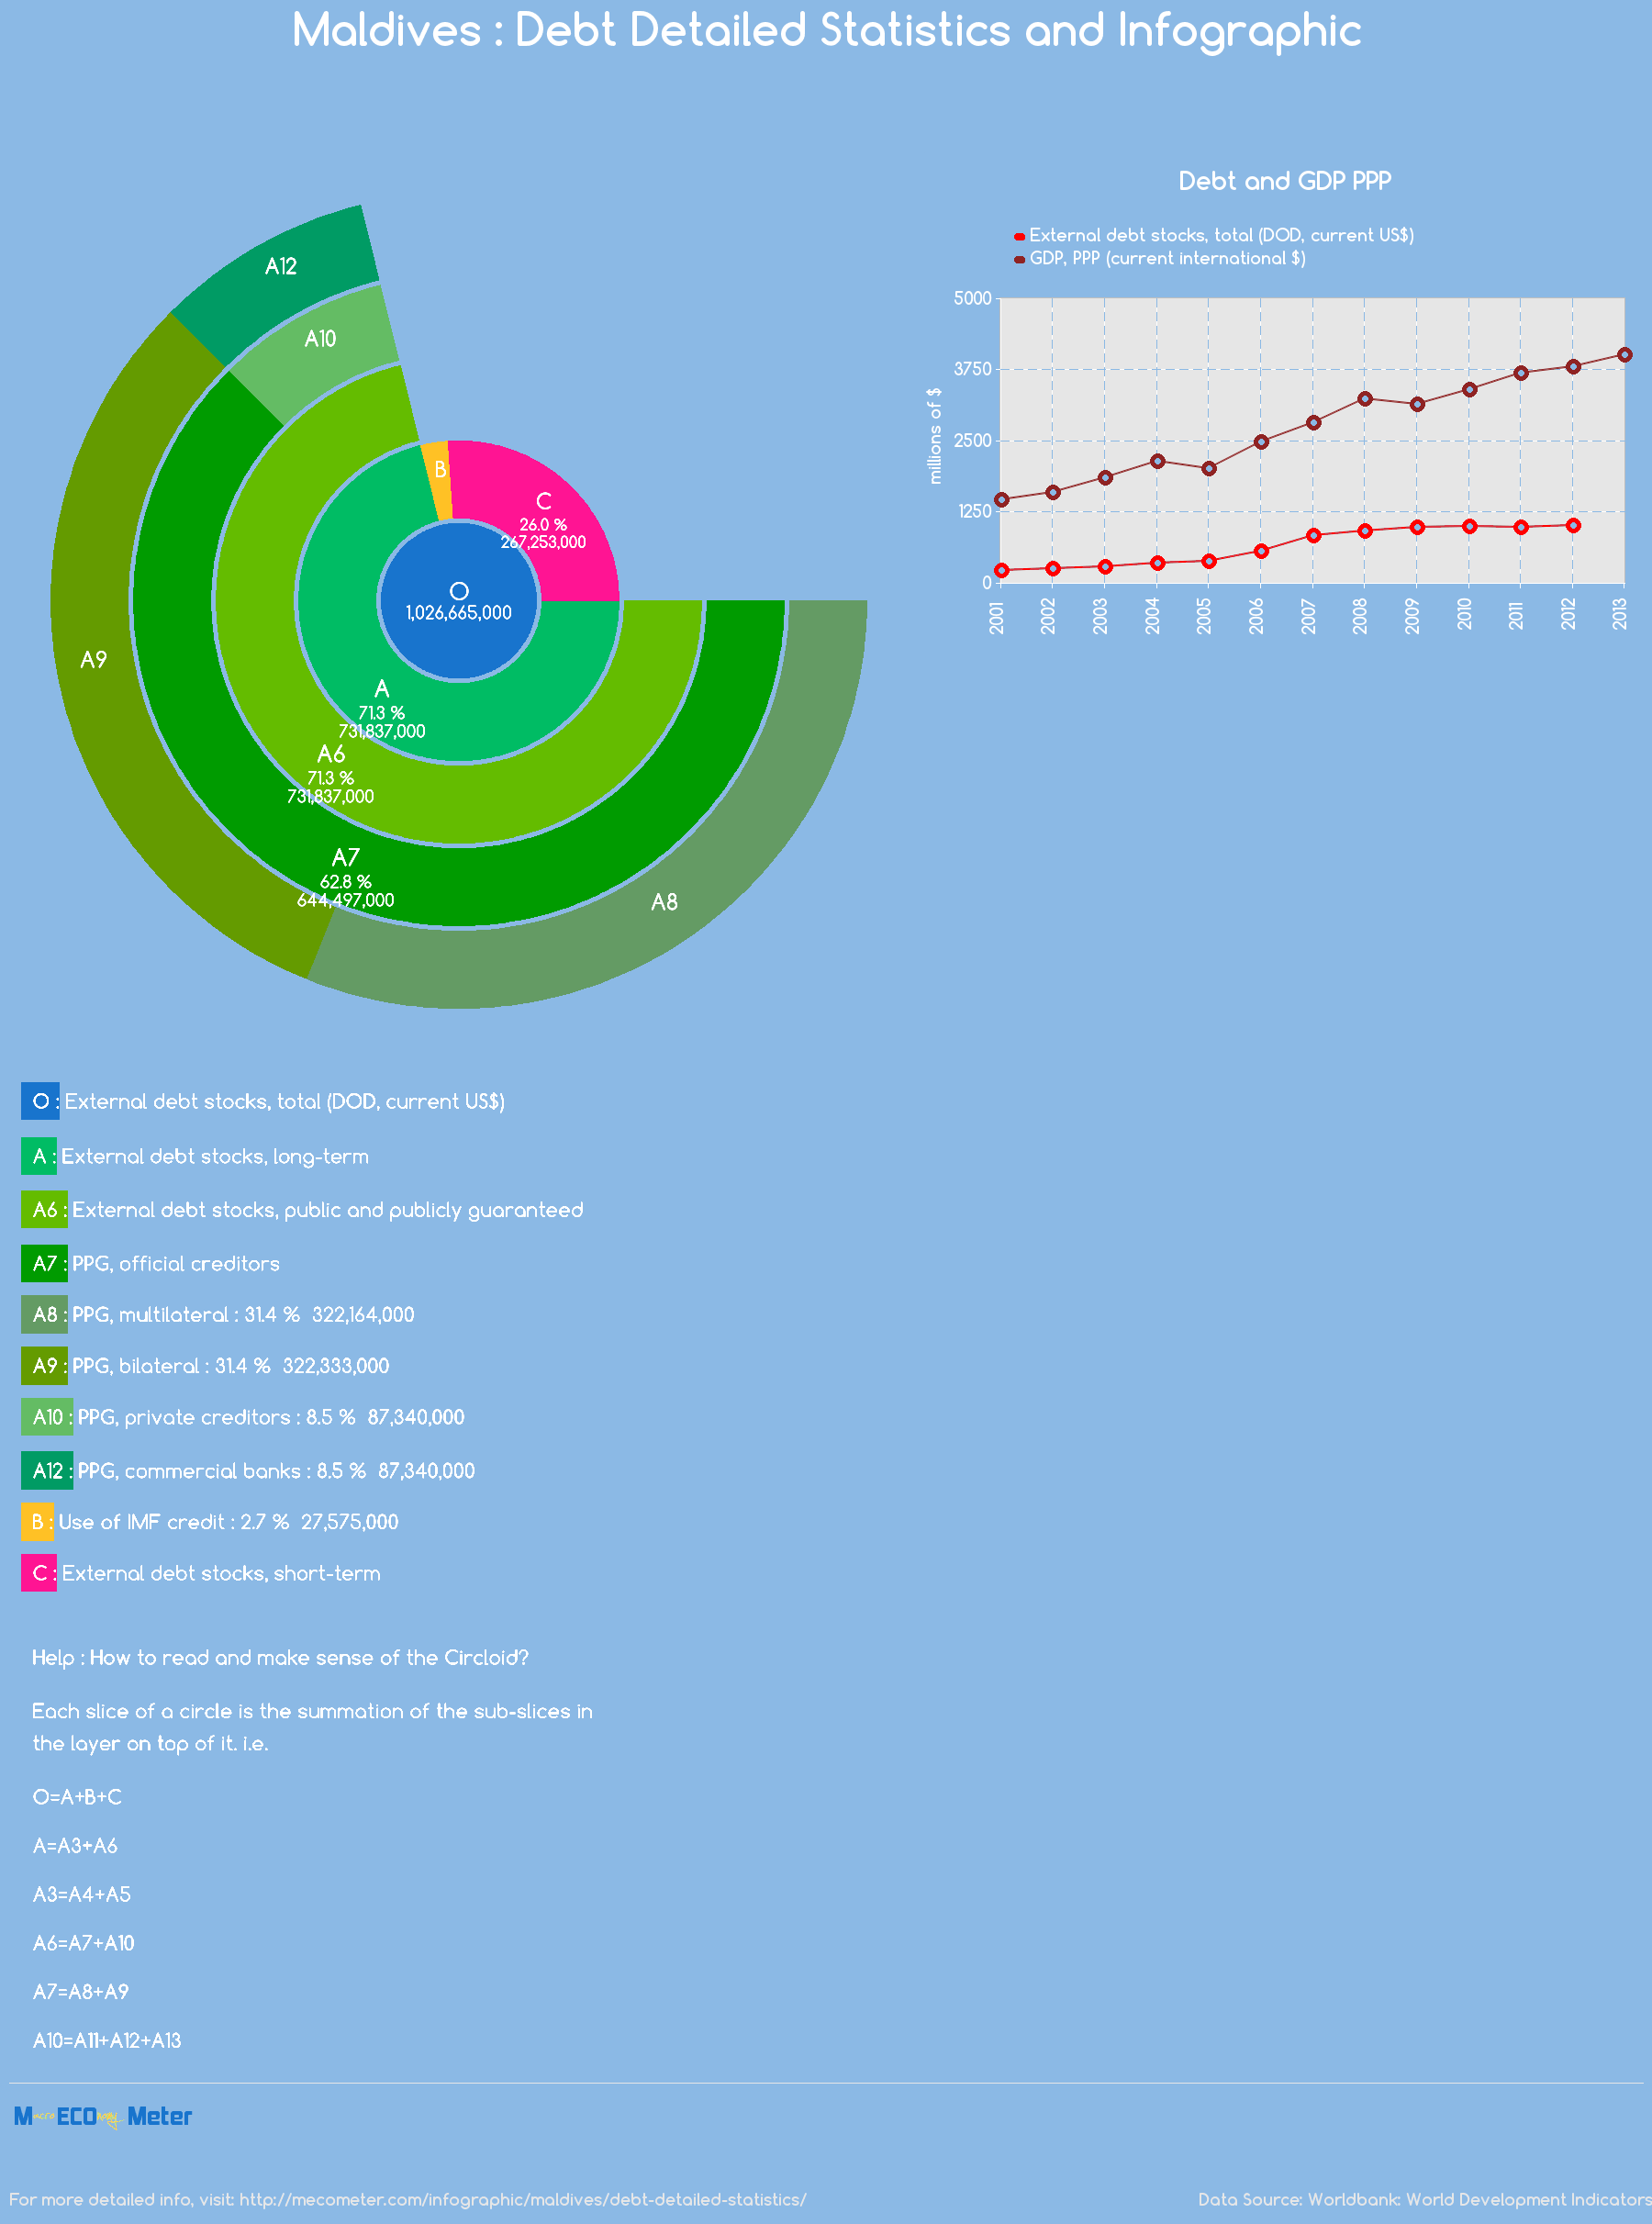 Maldives : Debt Detailed Statistics and Infographic